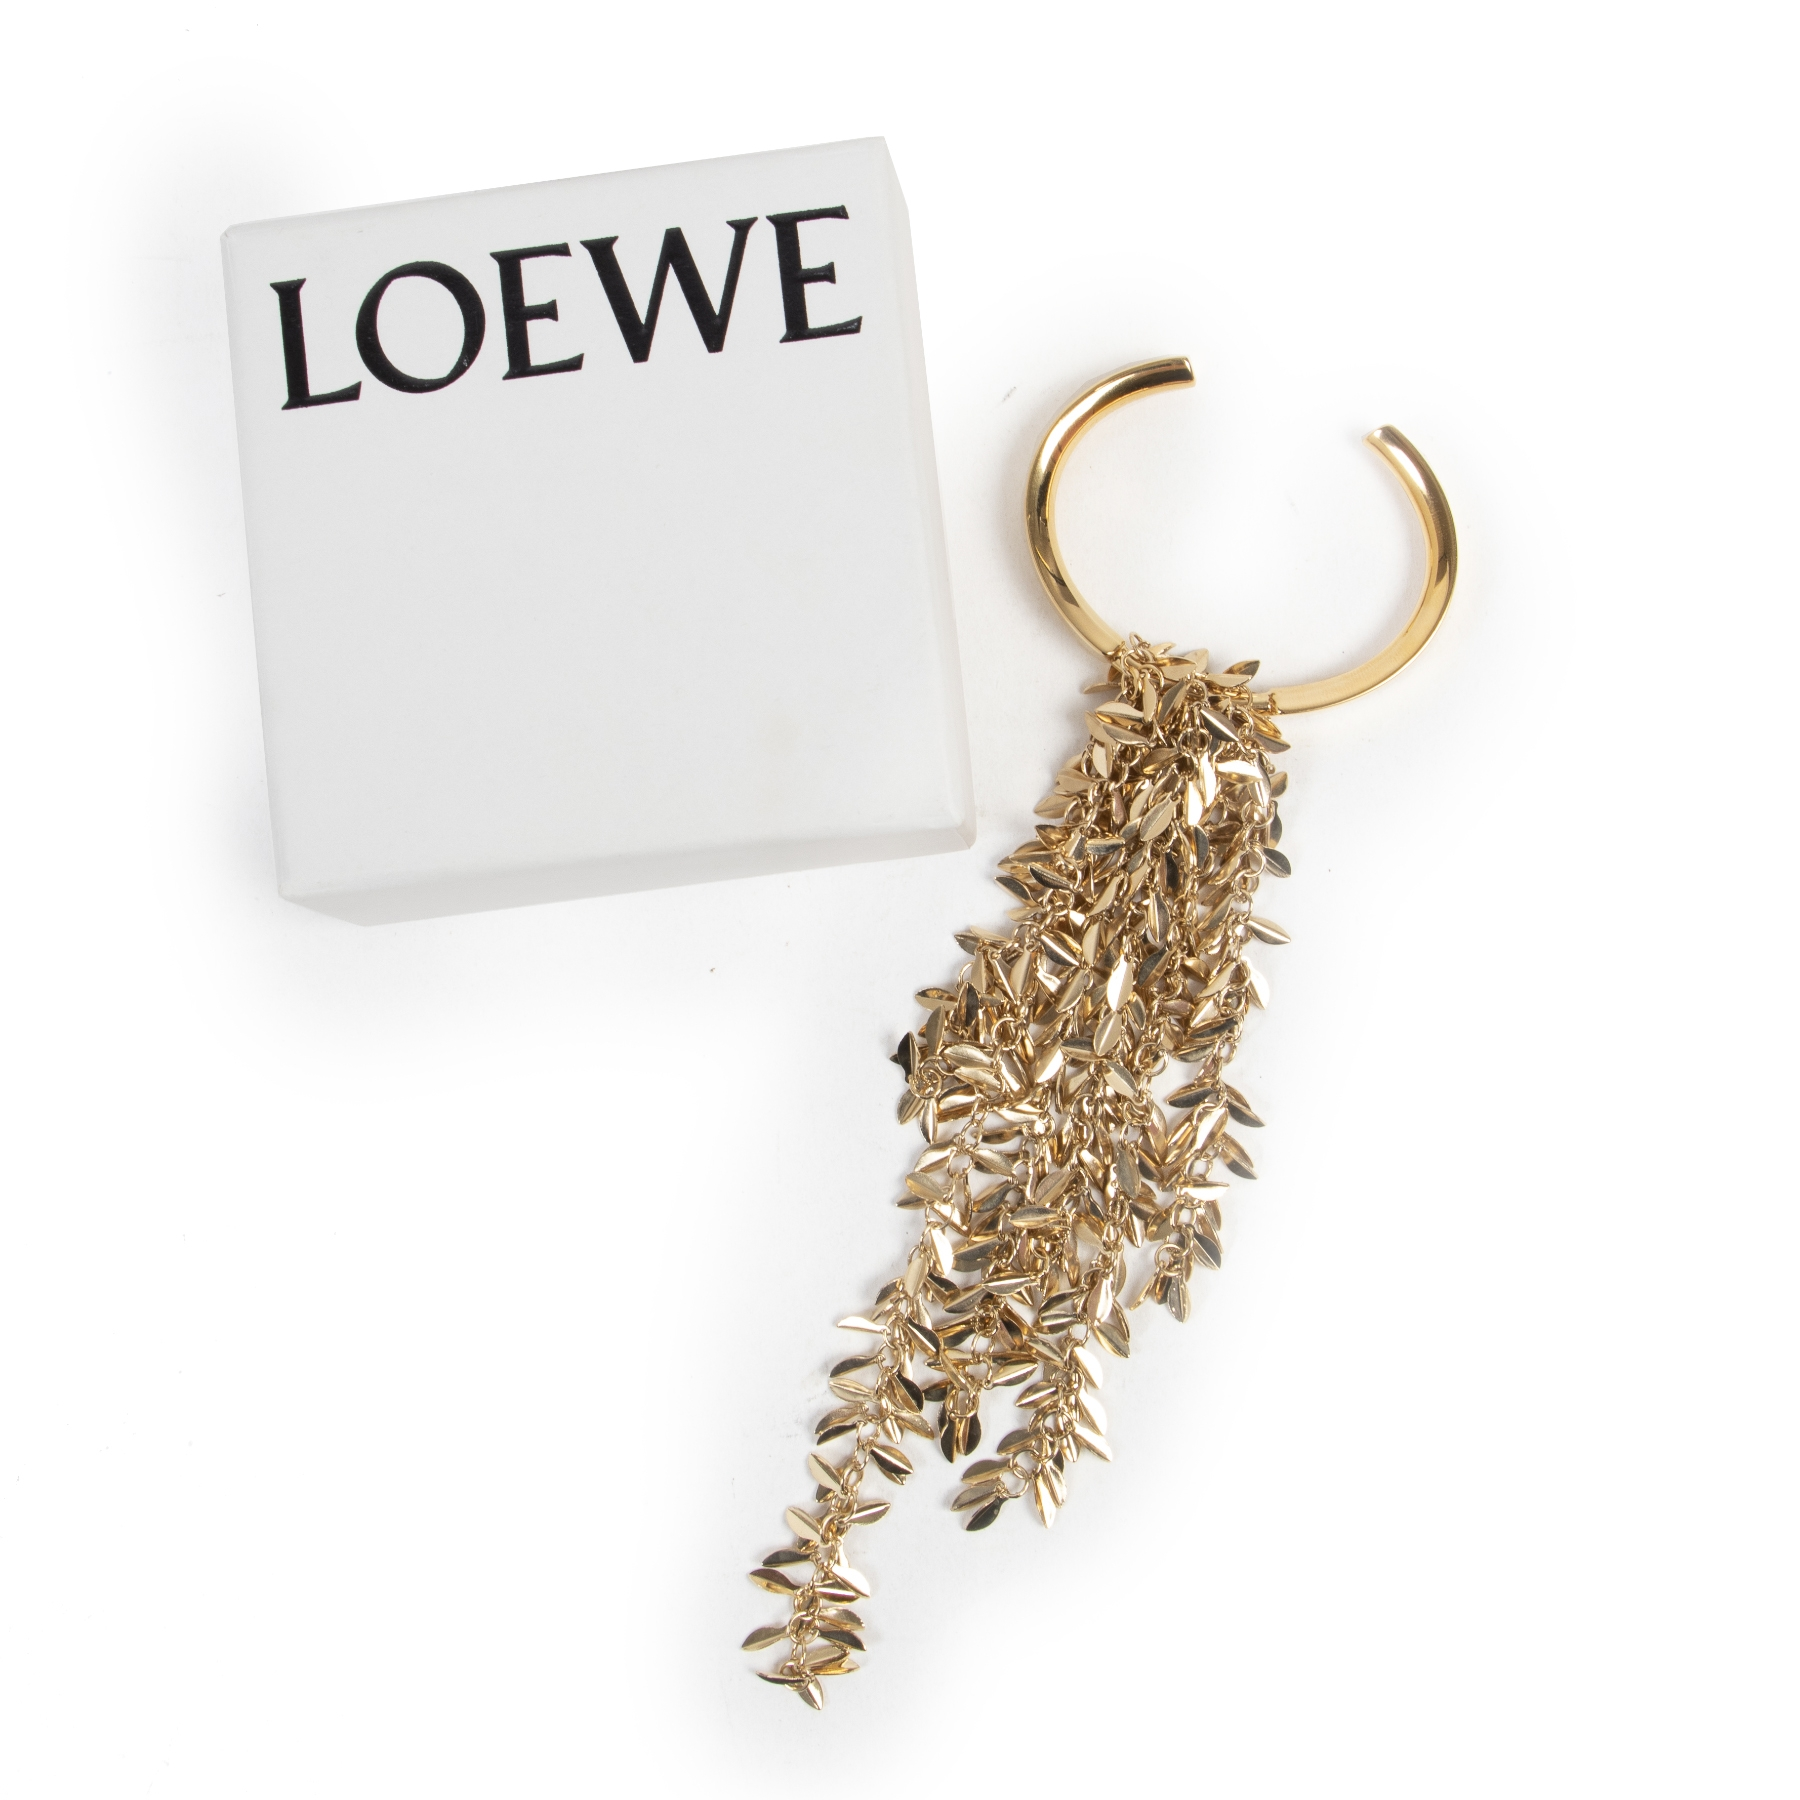 Authentic secondhand Loewe Golden Bracelet designer accessories fashion luxury vintage webshop safe secure online shopping